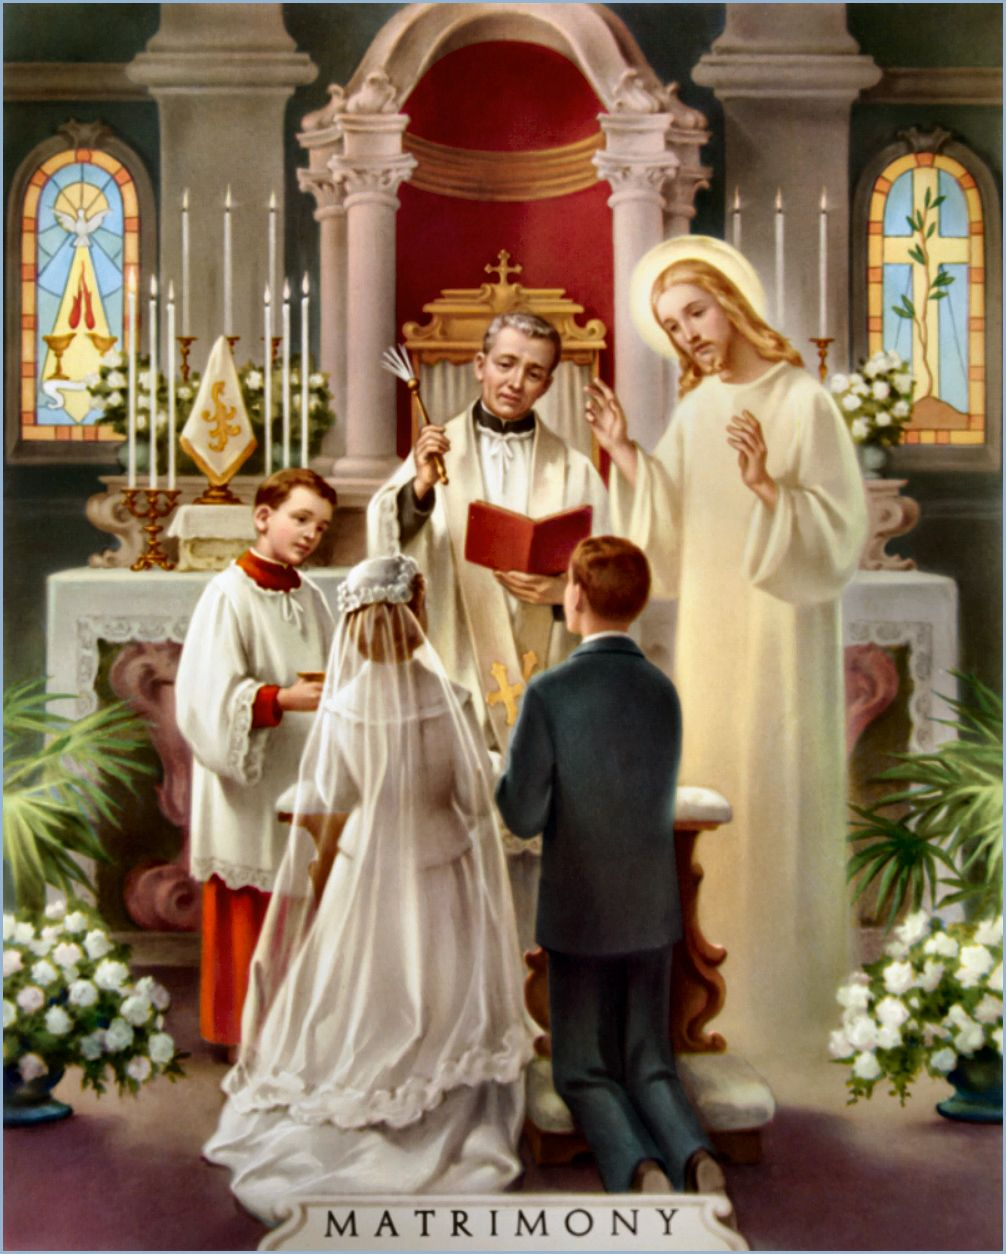 10 facts about sacred matrimony catholic sacraments roman the seven sacraments of the catholic church the latin word sacramentum means a sign of the sacred the seven sacraments are ceremonies that point to what biocorpaavc Gallery